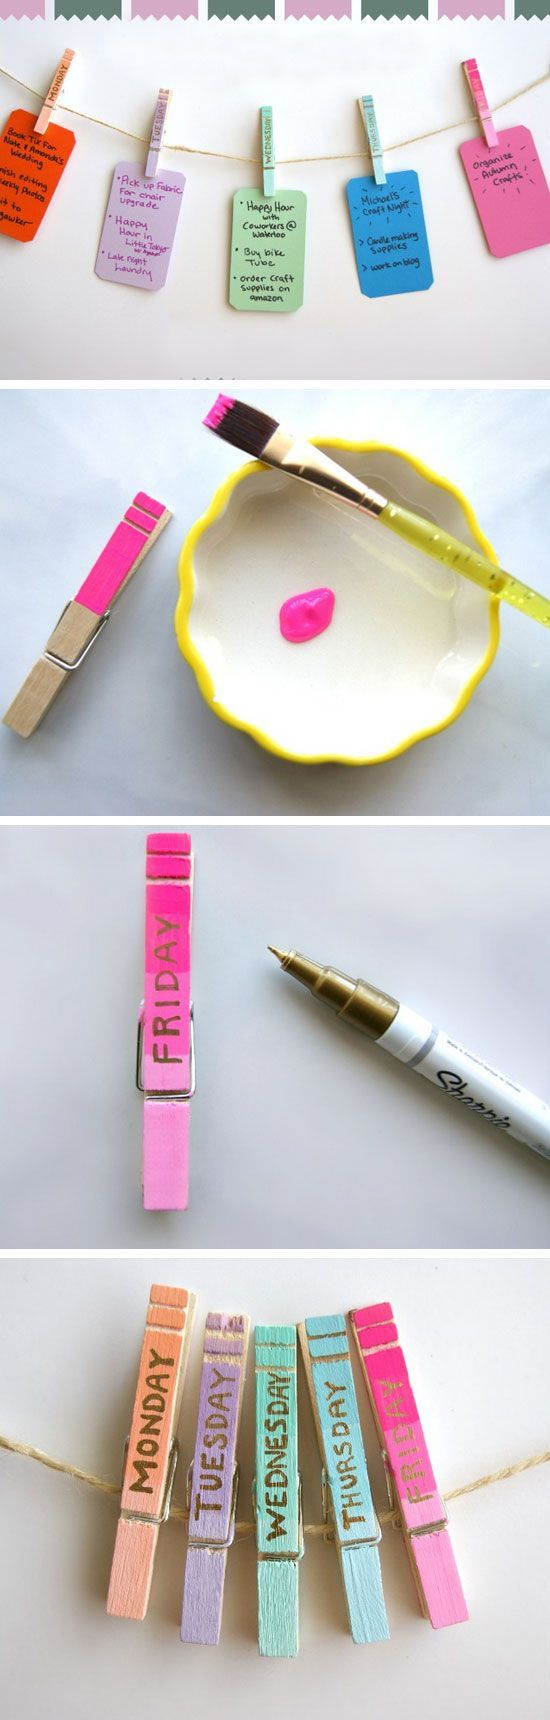 26 Life Hacks Every Girl Should Know – Seriously Awesome!